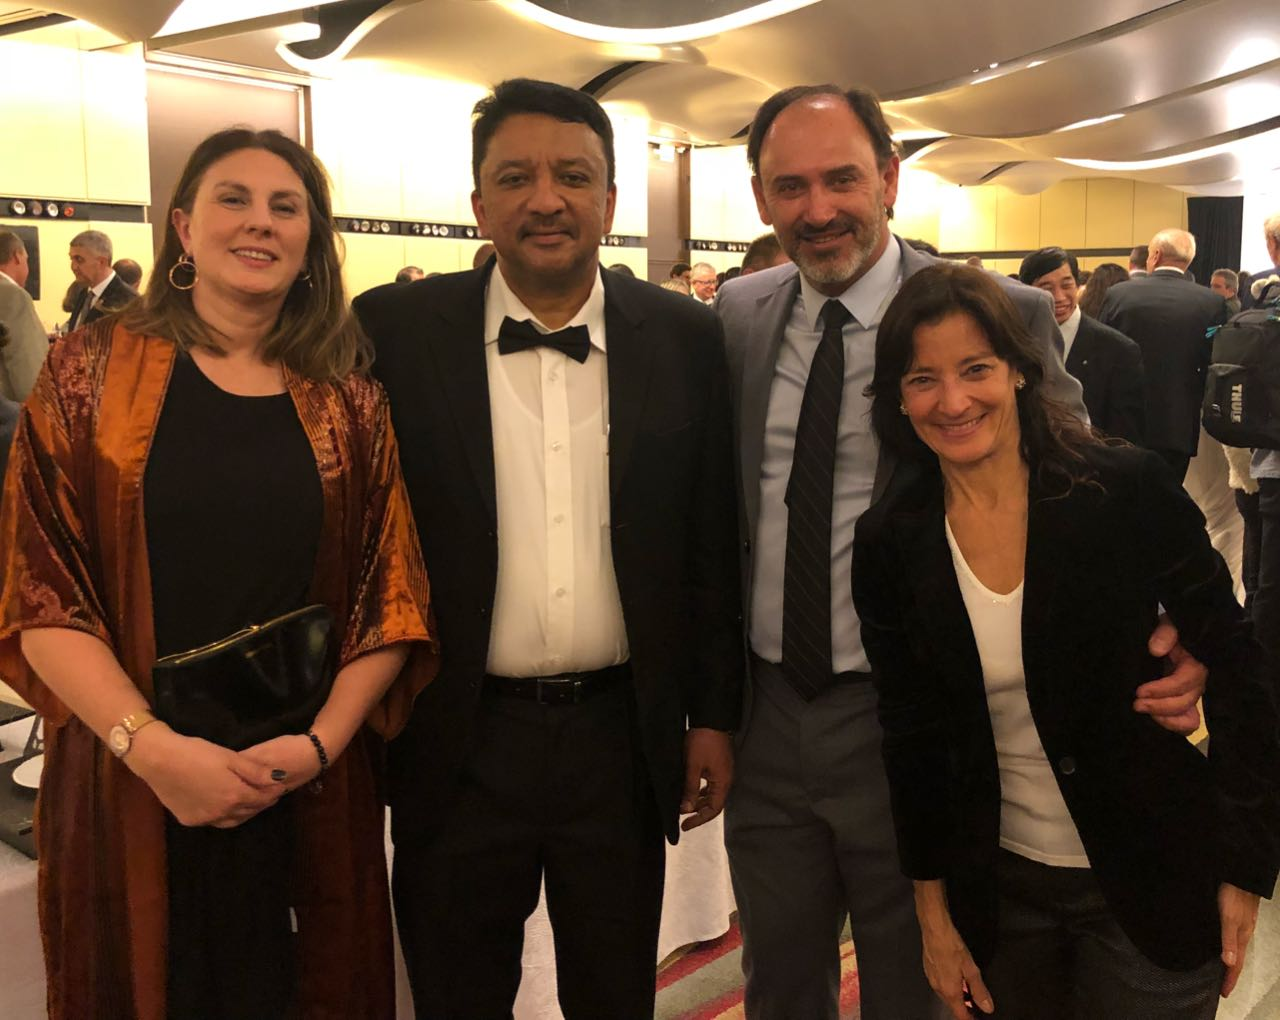 Dr SM Balaji with Dr Maricel Marini, Department of Oral and Maxillofacial Department, University of Buenos Aires, Prof Sergio Gotta, Head of the Department of Oral and Maxillofacial Surgery, University of Buenos Aires and Dr Victoria Pezza, Head of the Department of Oral and Maxillofacial Surgeon, Aleman Hospital, Buenos Aires at the inauguration ceremony of the FDI Annual World Dental Conference in Buenos Aires